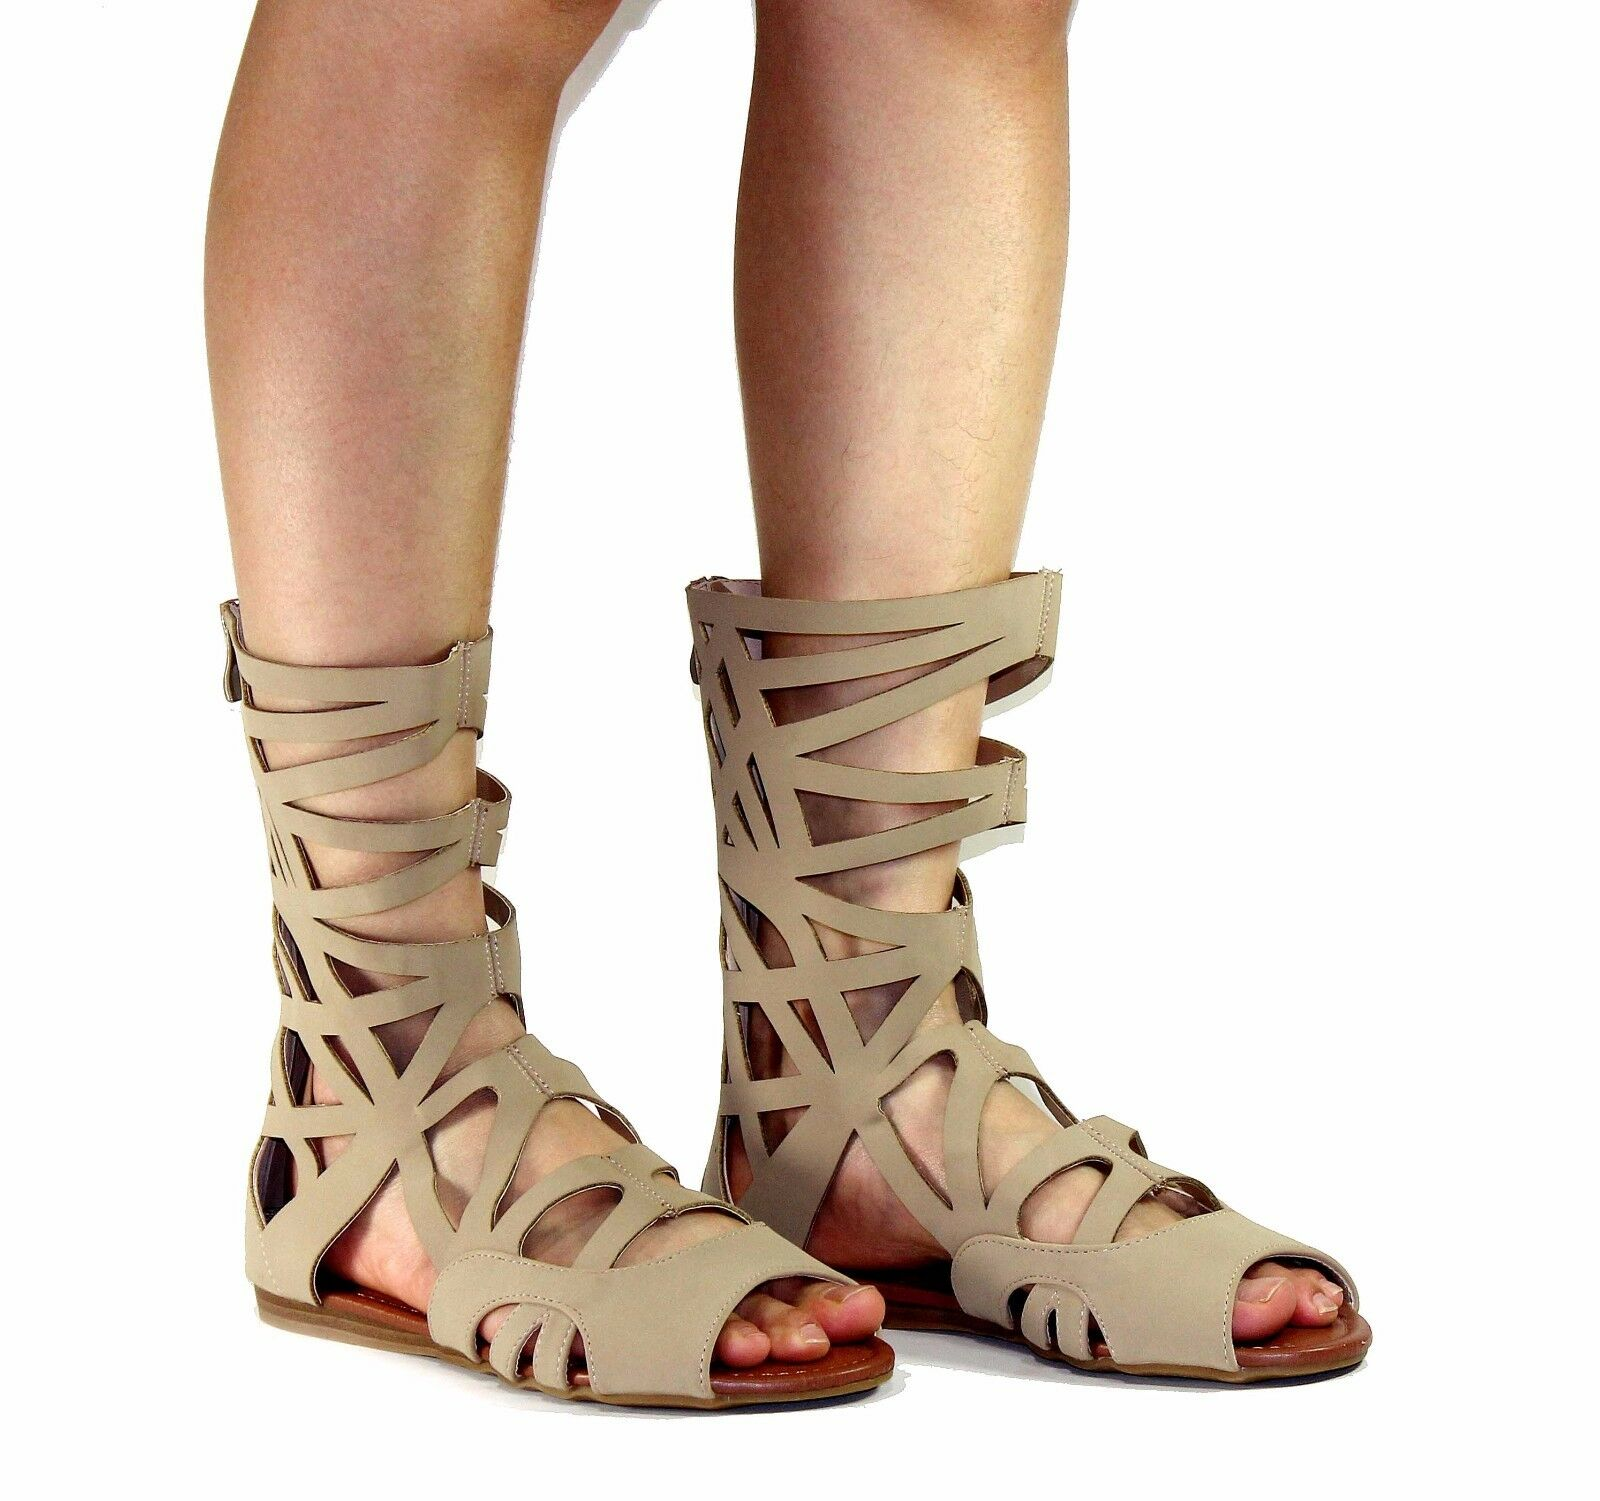 sonia-83 New Sandals Zipper Shoes Gladiator Party Beach Casual Women's Shoes Zipper Taupe cd4dcd